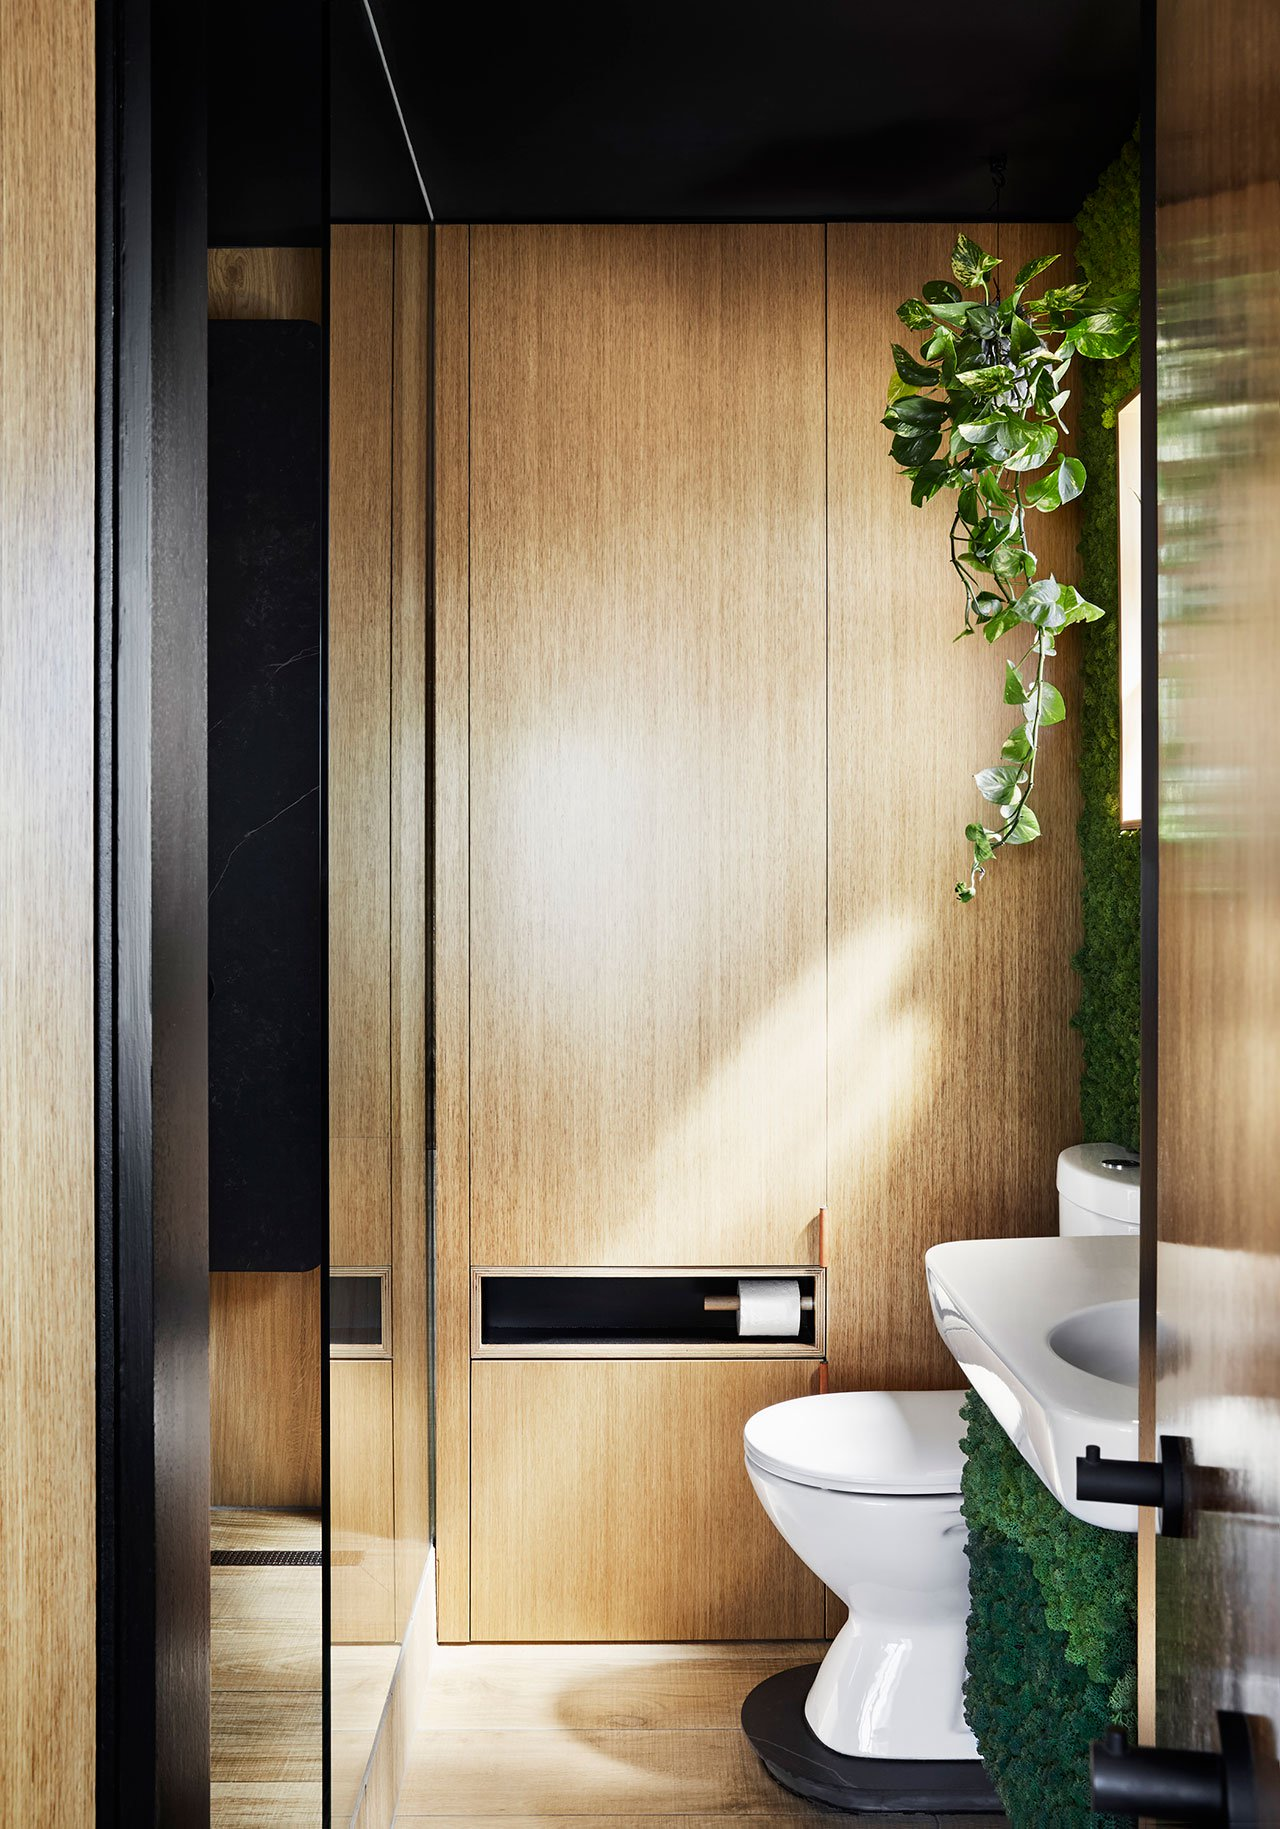 The bathroom features a shower and much light colored wood and black surfaces to continue the color scheme of the apartment